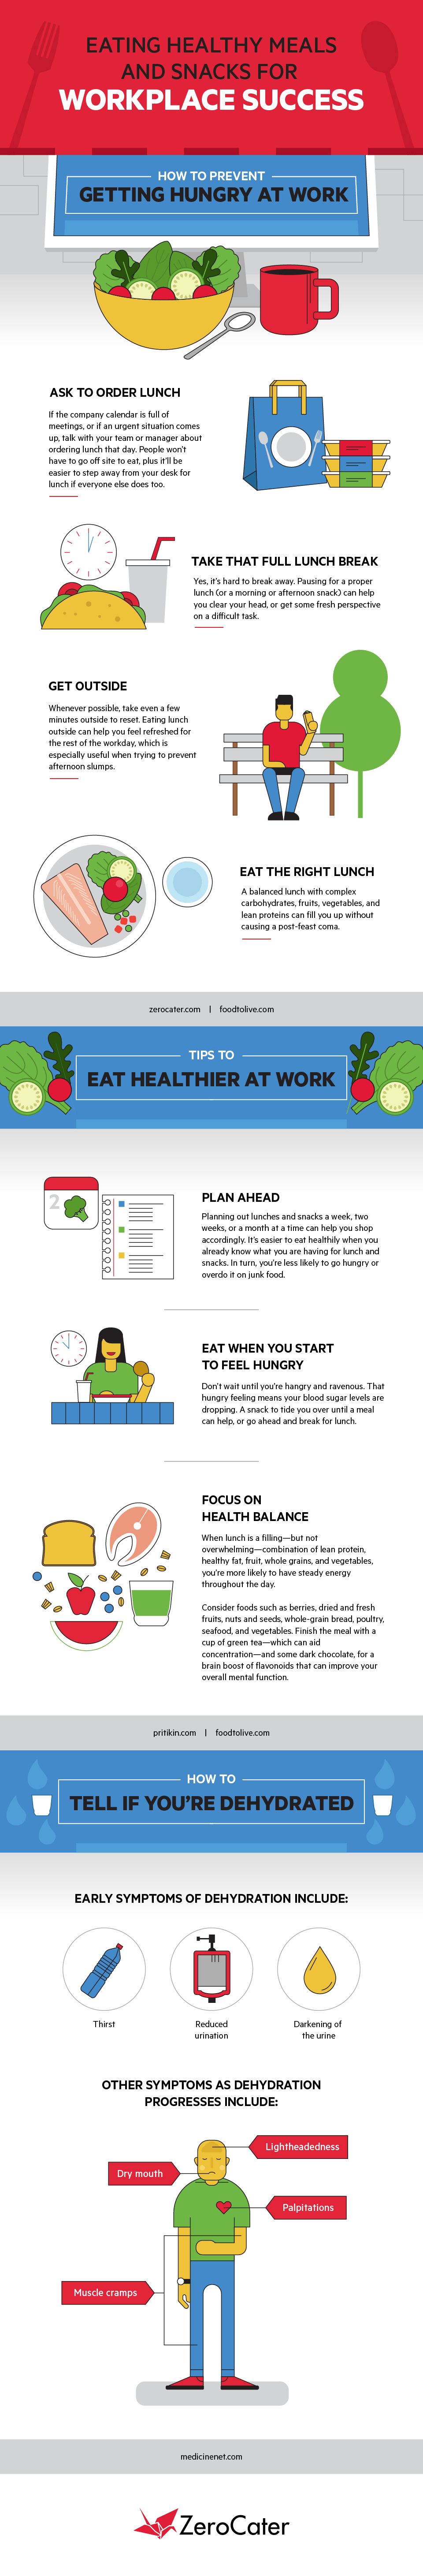 Why Eating Right is Critical for Workplace Success - Infographic